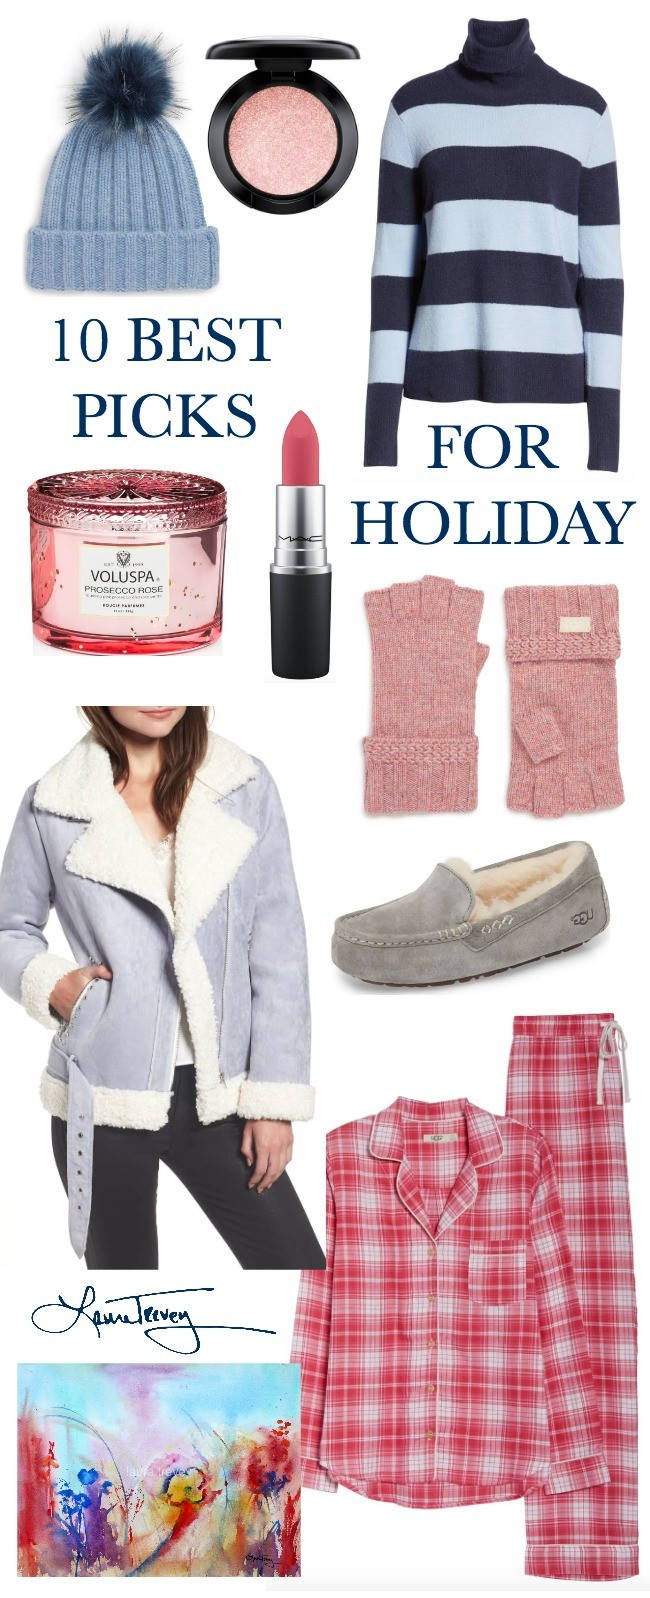 10 Holiday Gifts For Her | Laura Trevey PIcks for 2018